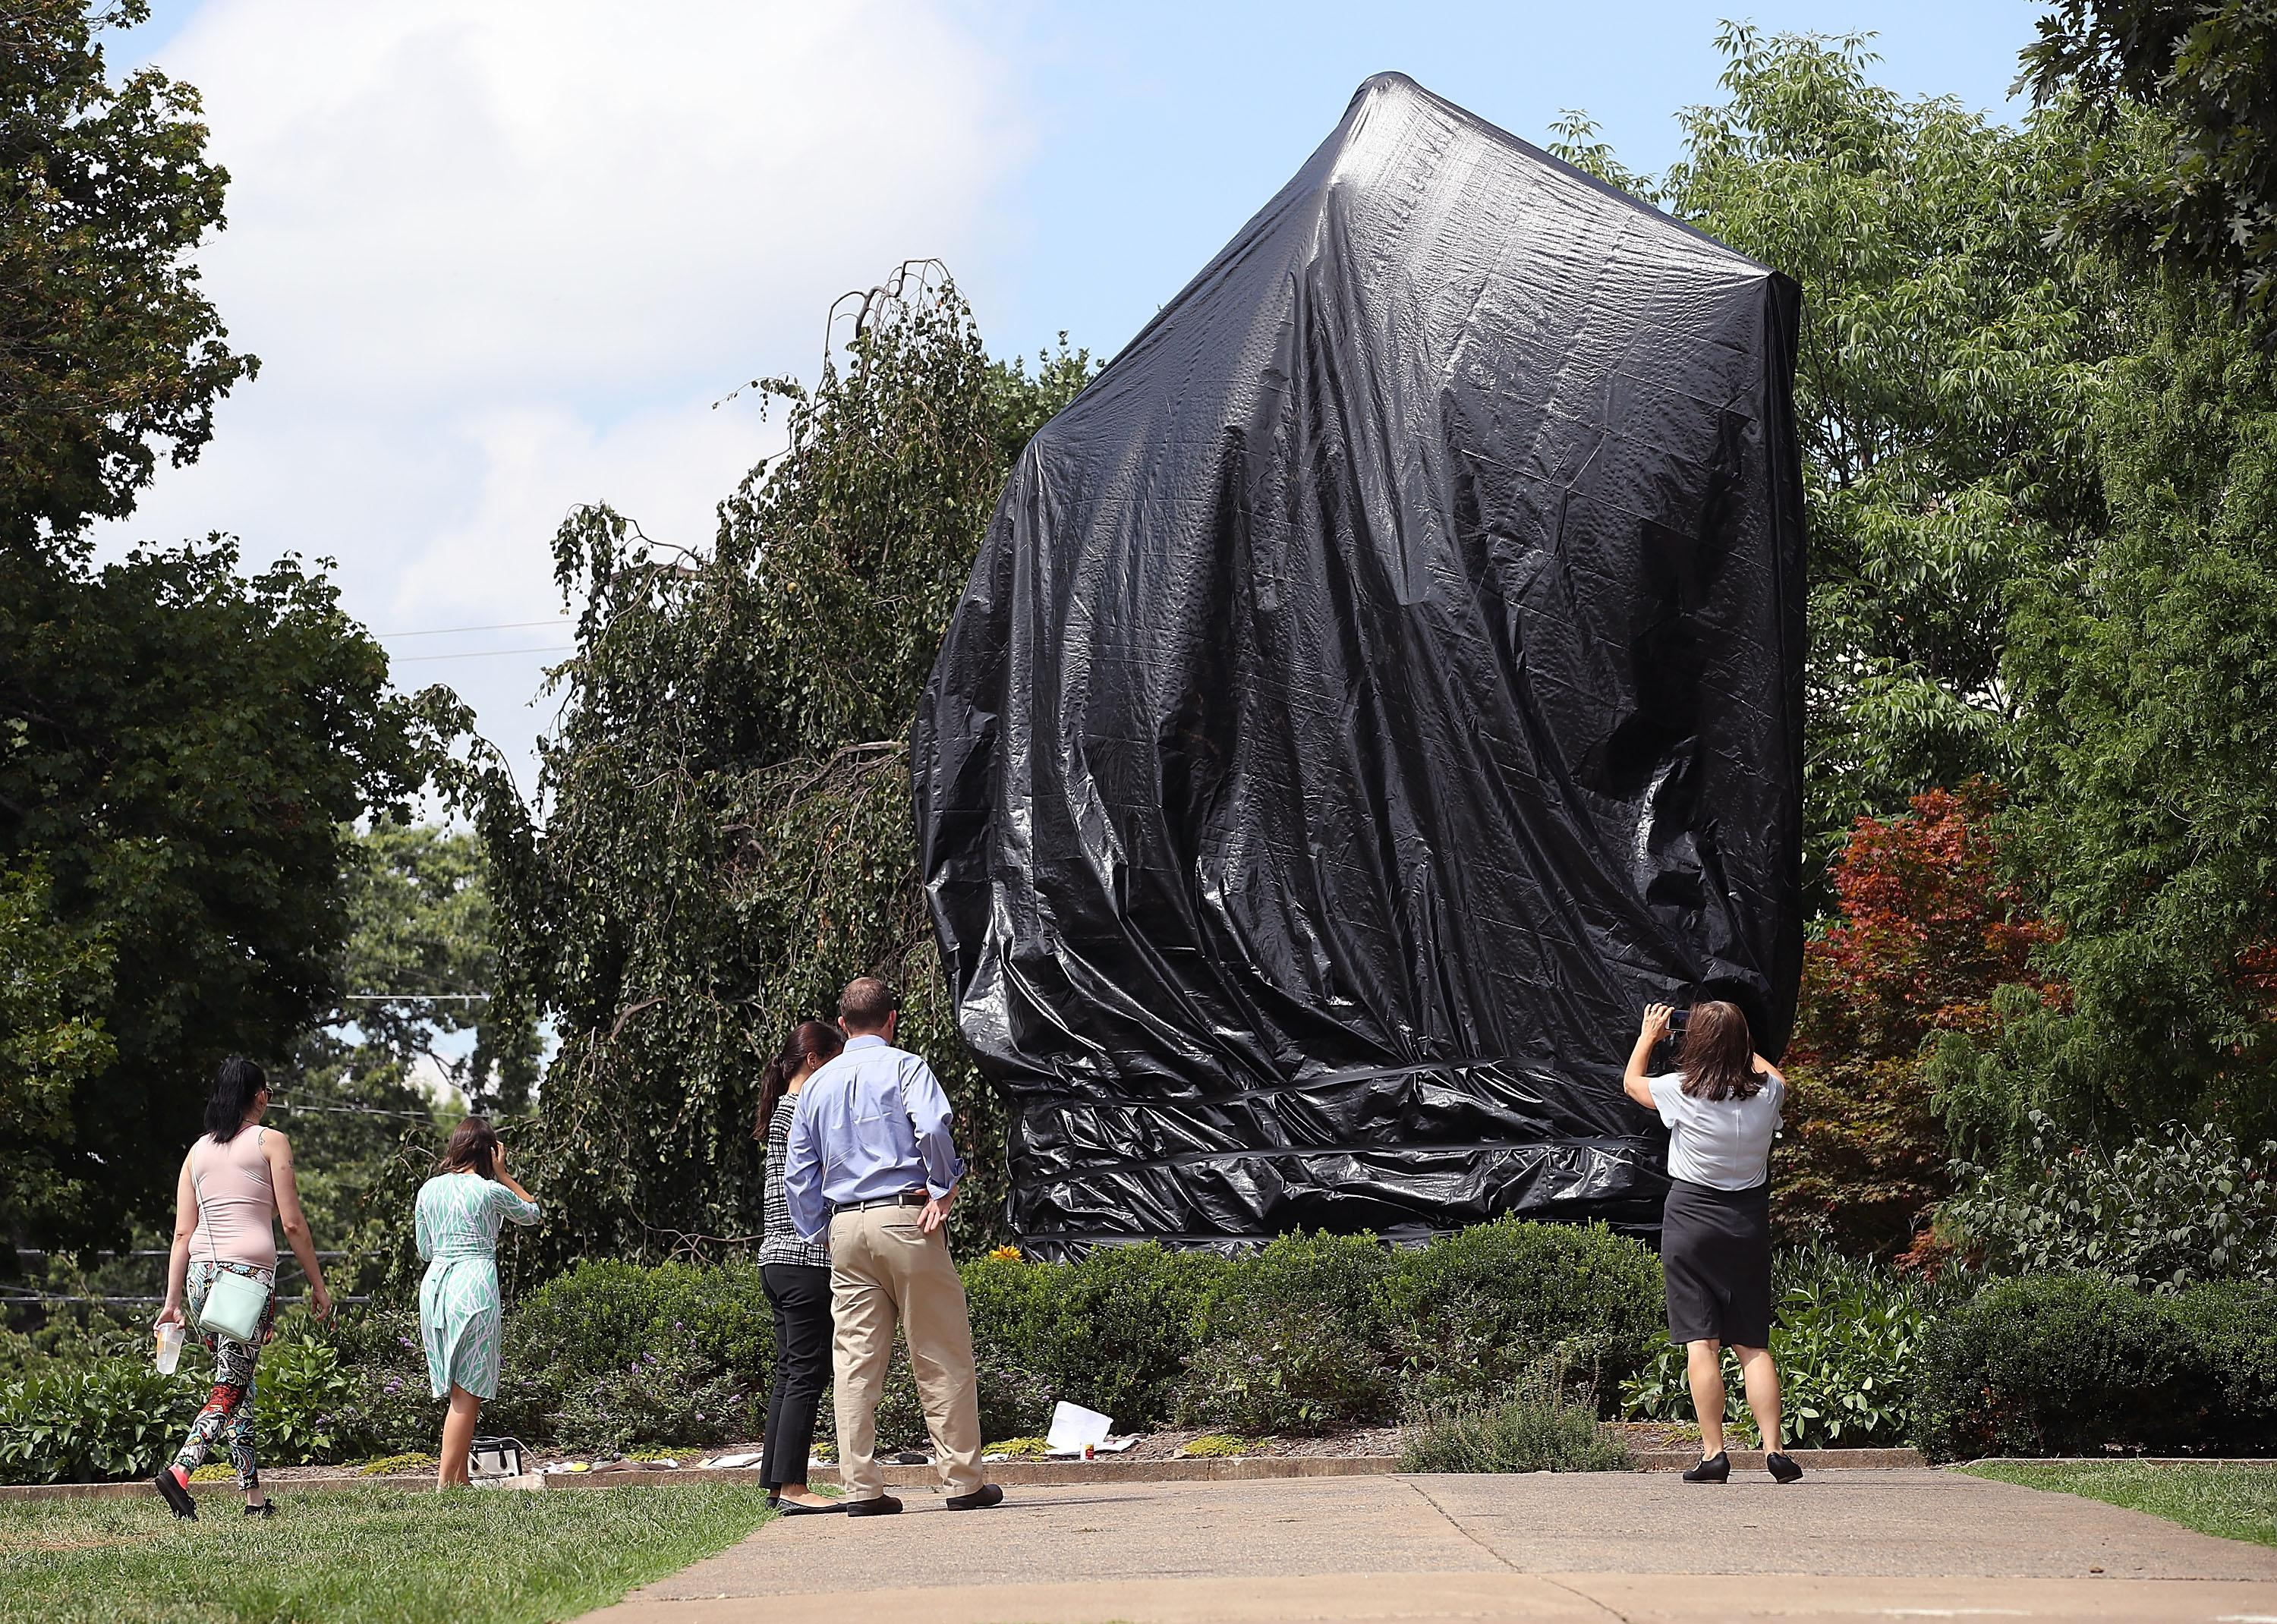 The statue of Confederate Gen. Robert E. Lee covered with a black tarp.